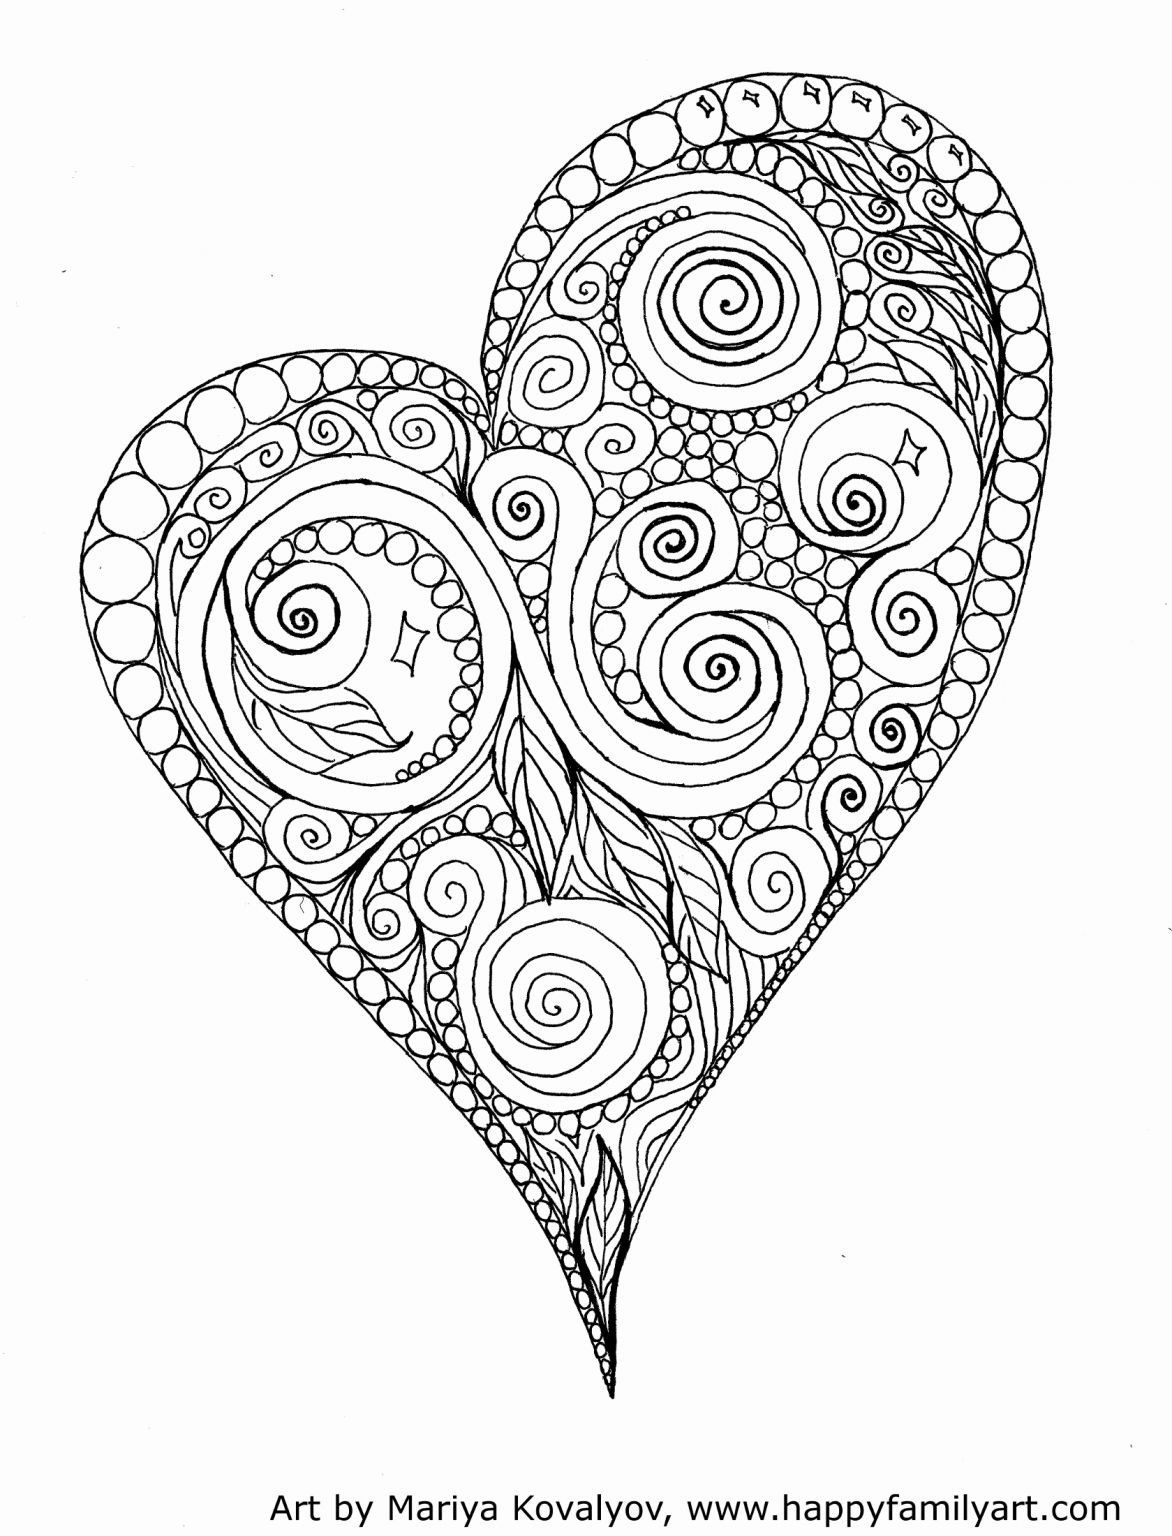 Heart Coloring Pages For Adults Coloring Books Gallery Heart Coloring Pages Valentines Day Coloring Page Valentines Day Coloring